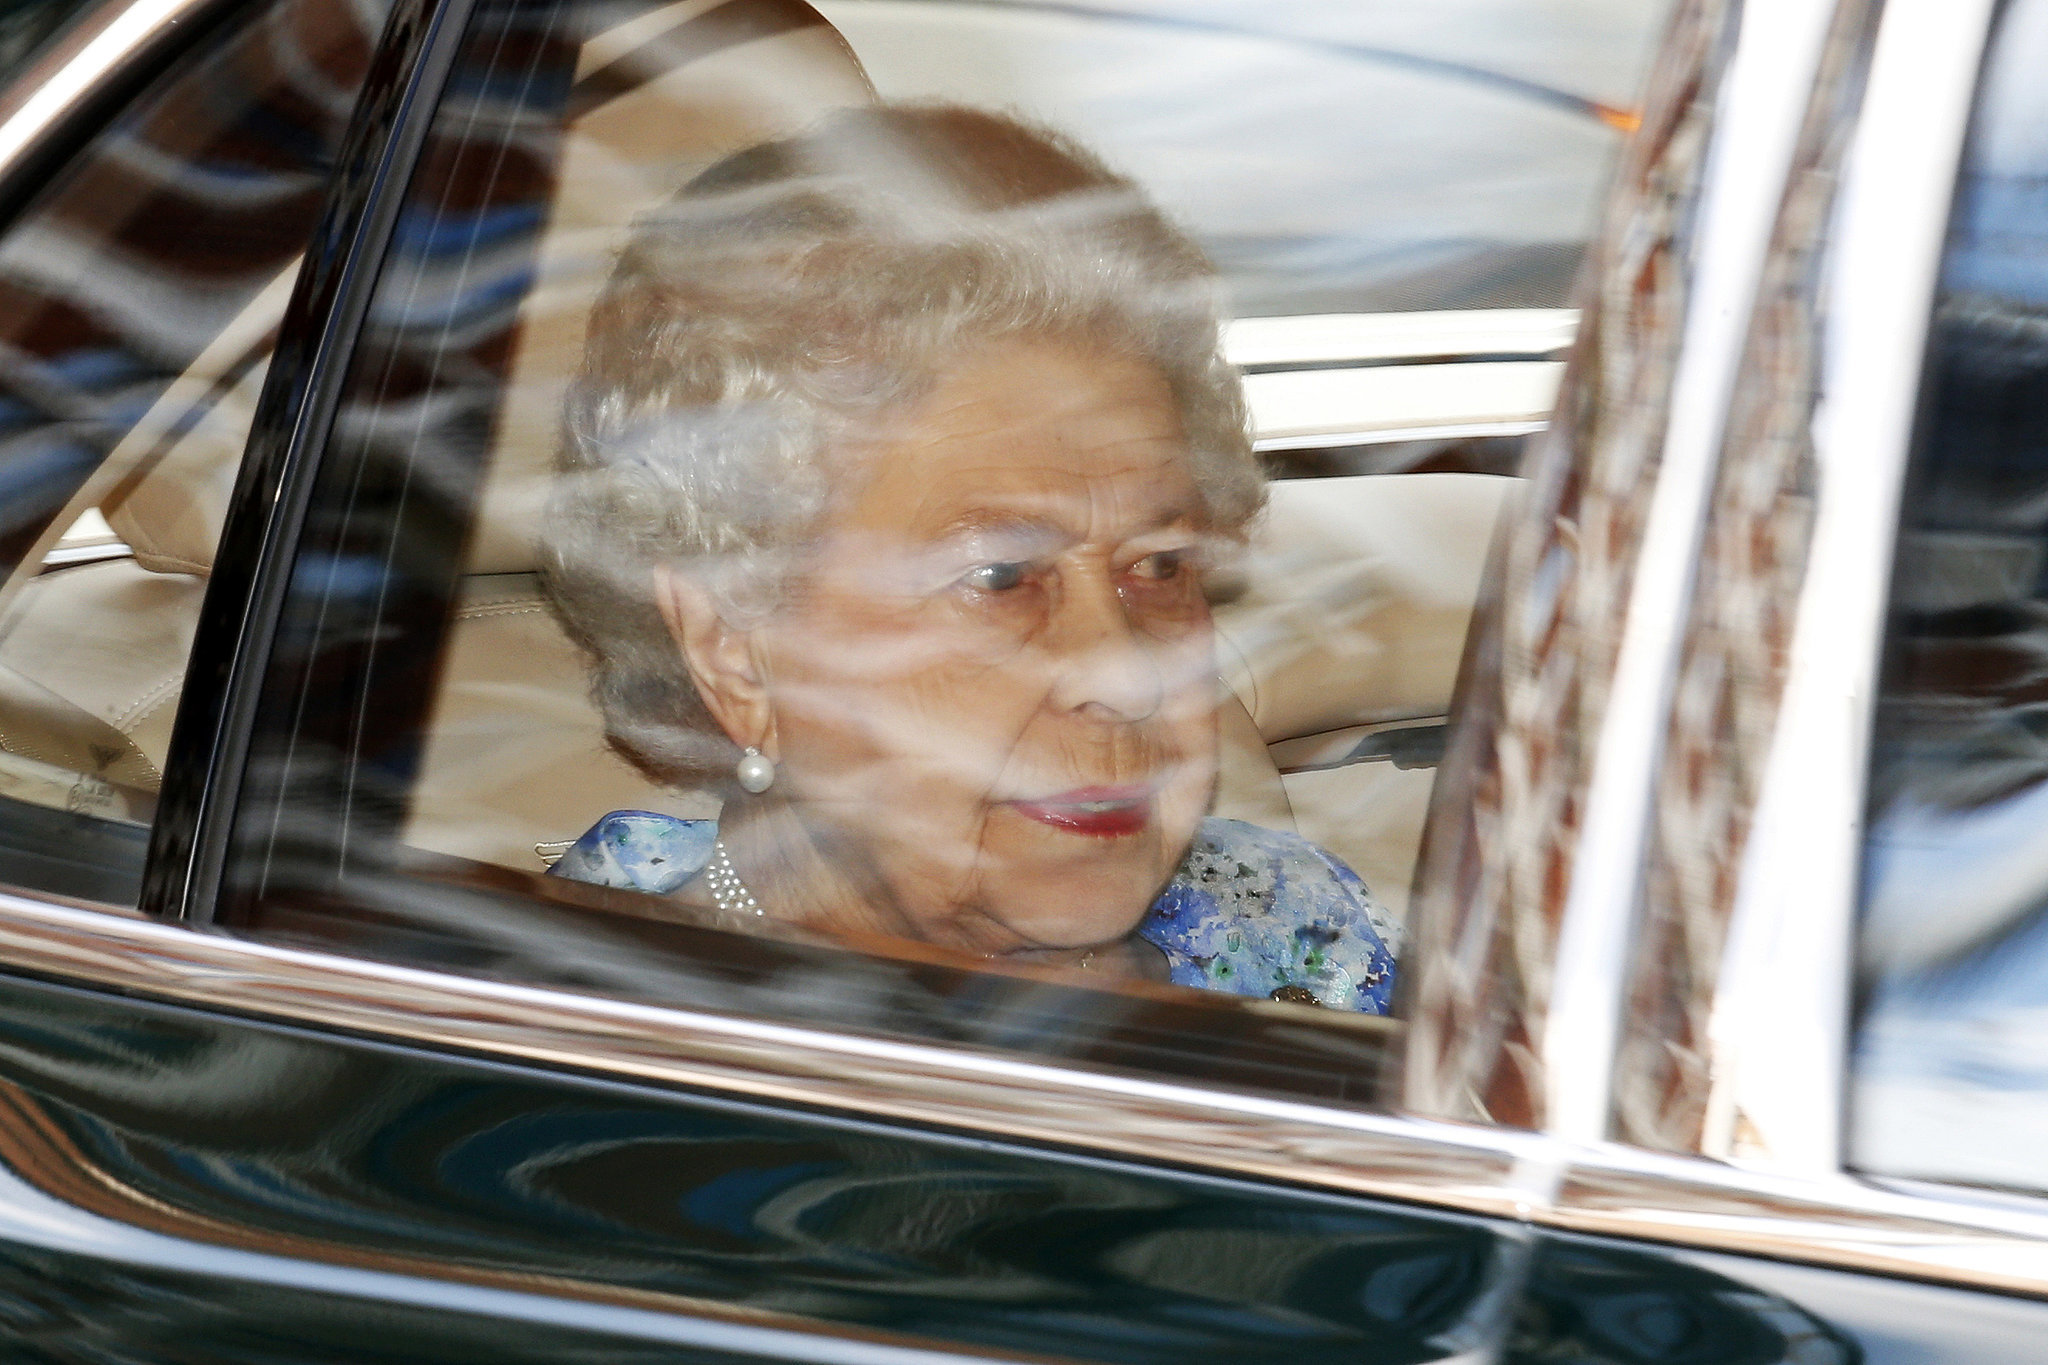 The queen arrived at Kensington Palace.